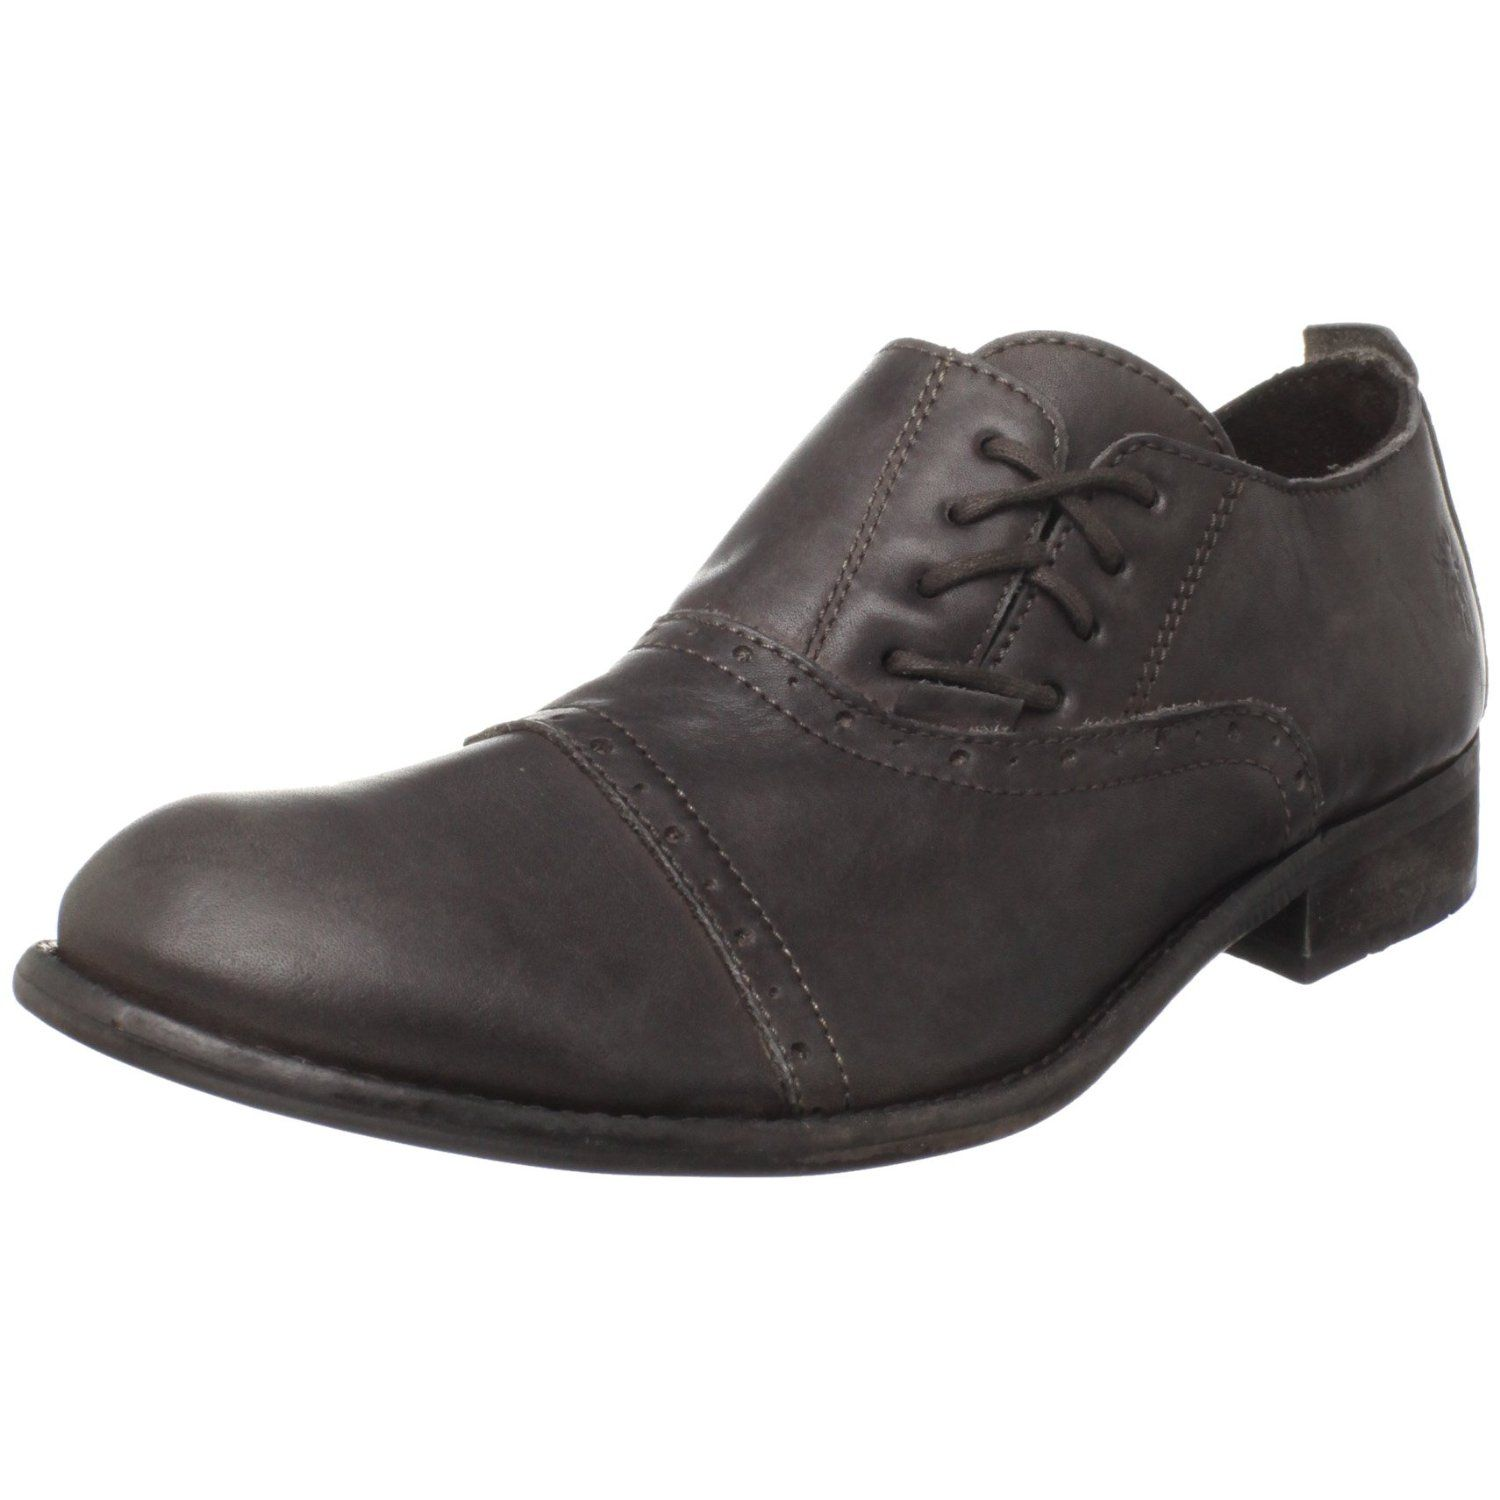 Designers Fly London Murt Fly Leather Oxford Black For Men Online